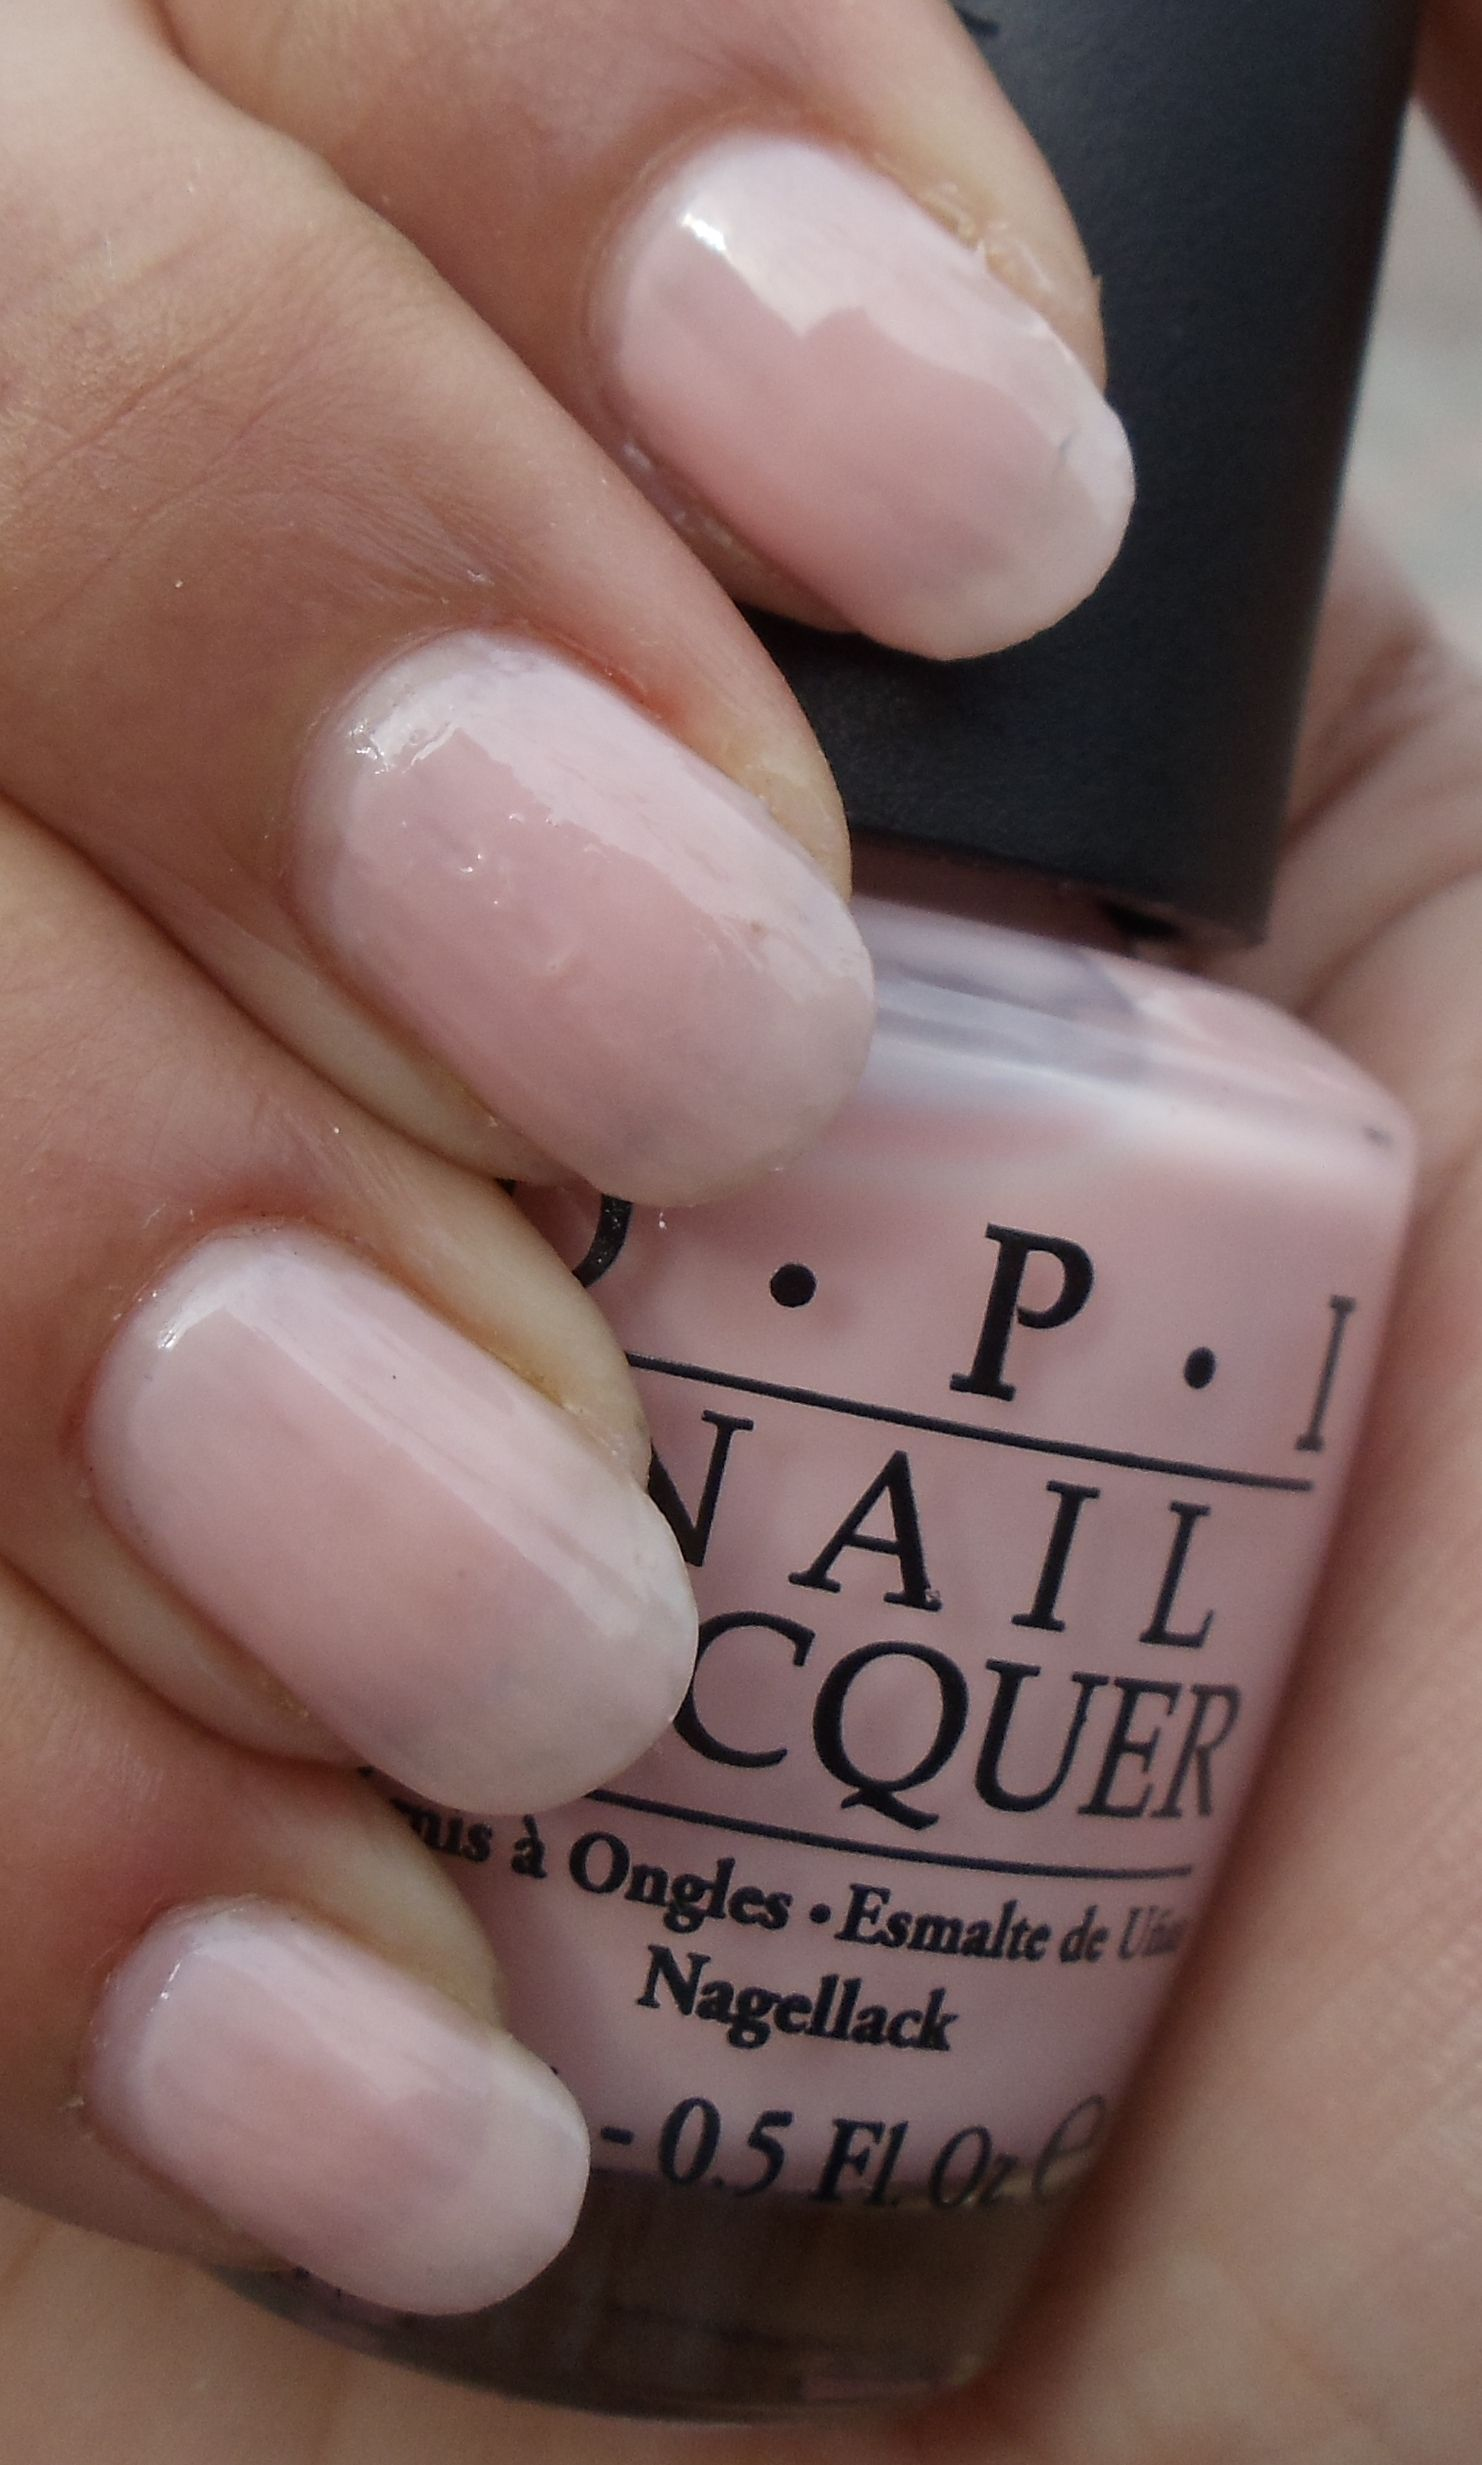 O.P.I \'Privacy Please\' | Nail Polish Swatch Gallery | Pinterest